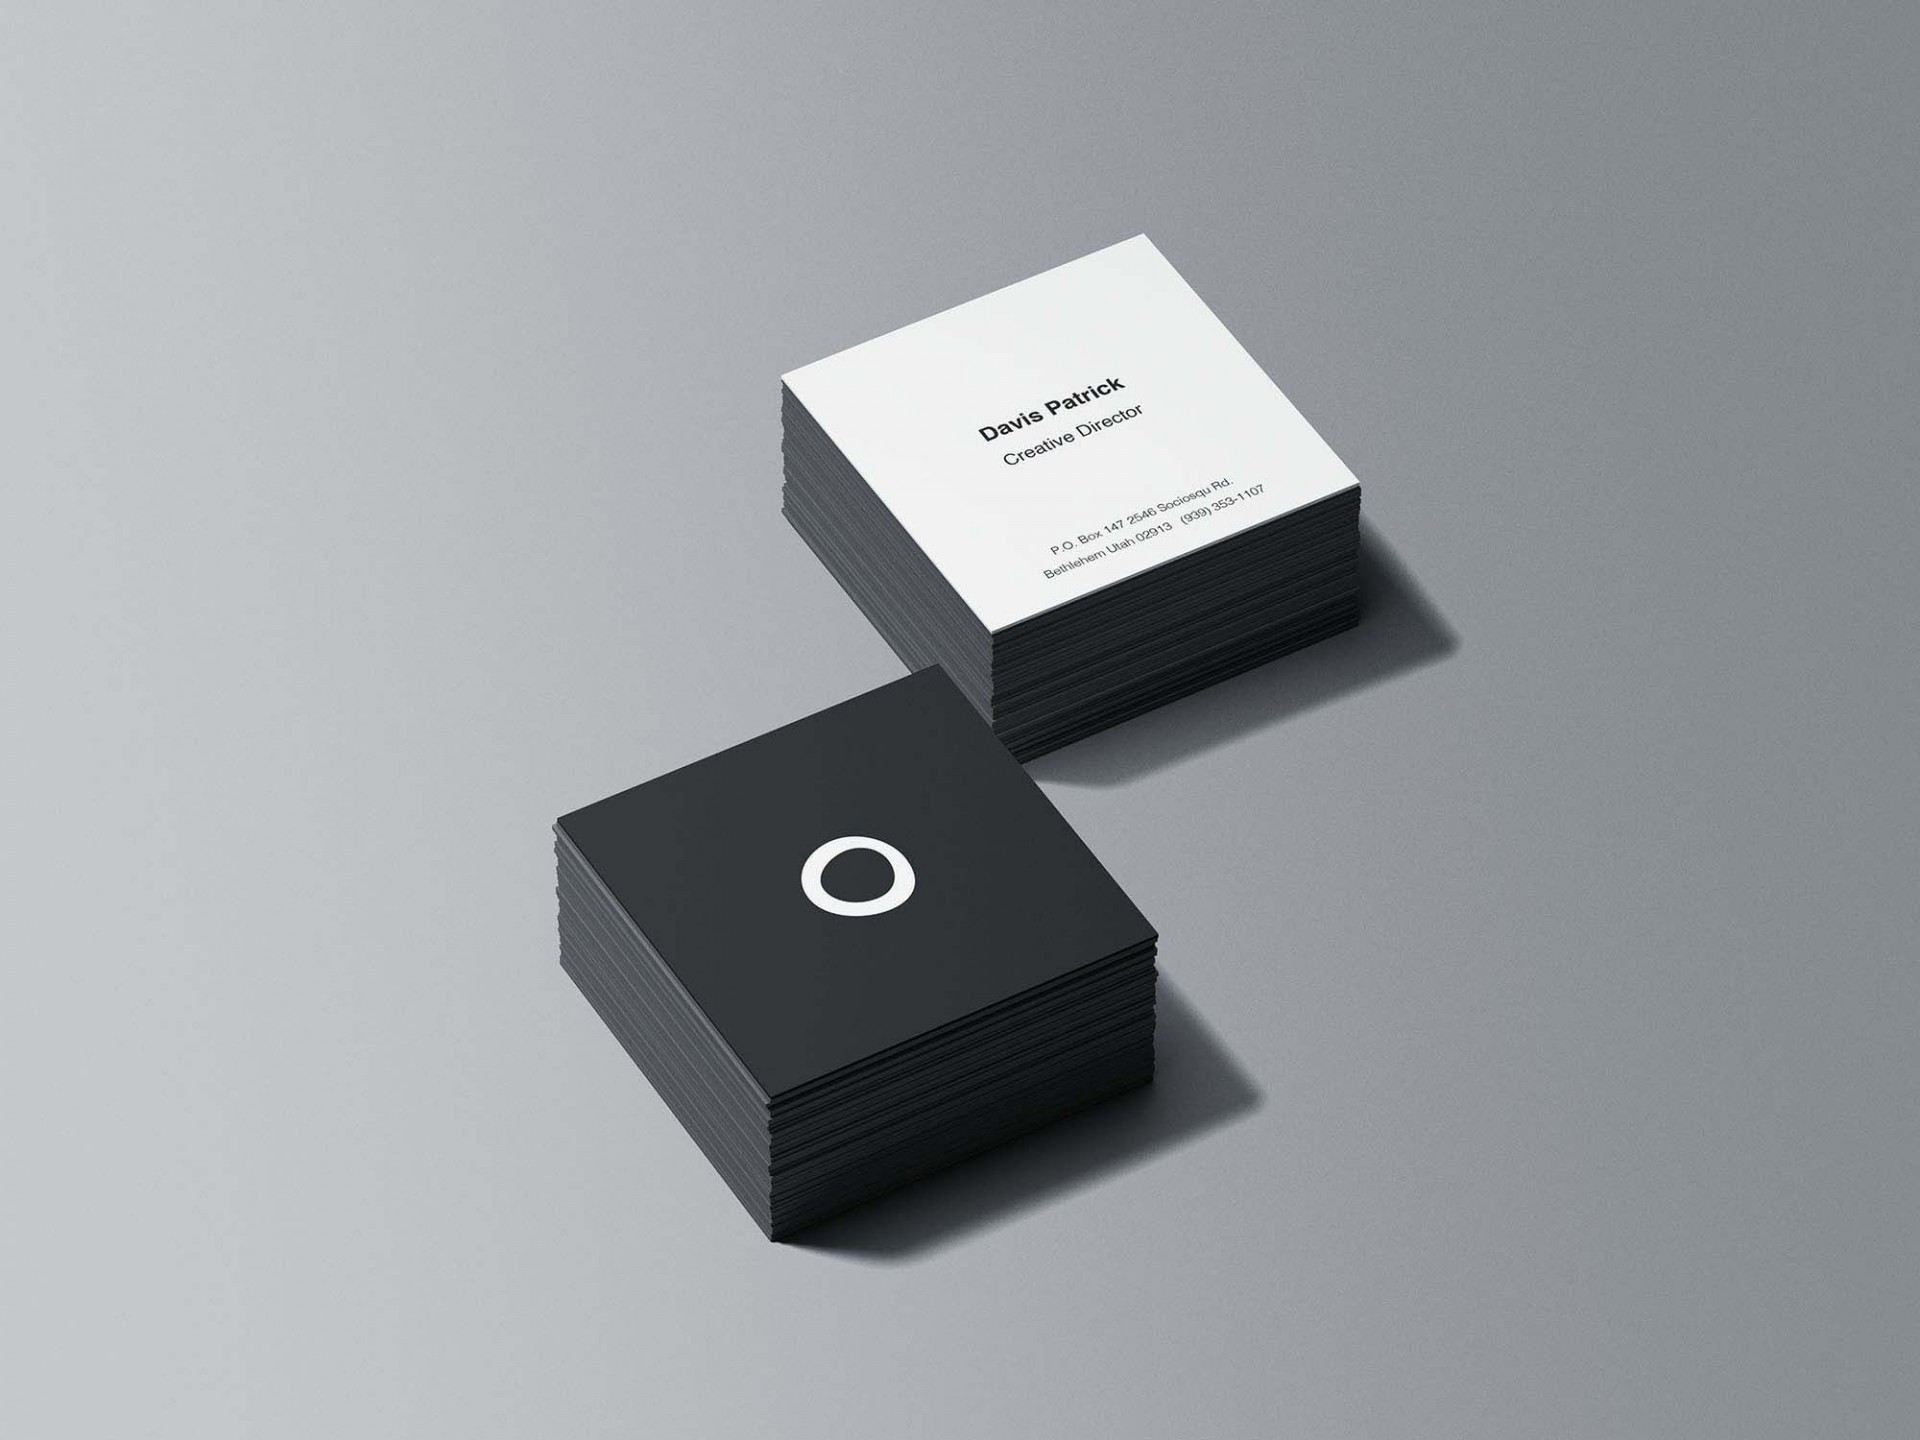 008 Frightening Square Busines Card Template Concept  Free Download Photoshop1920